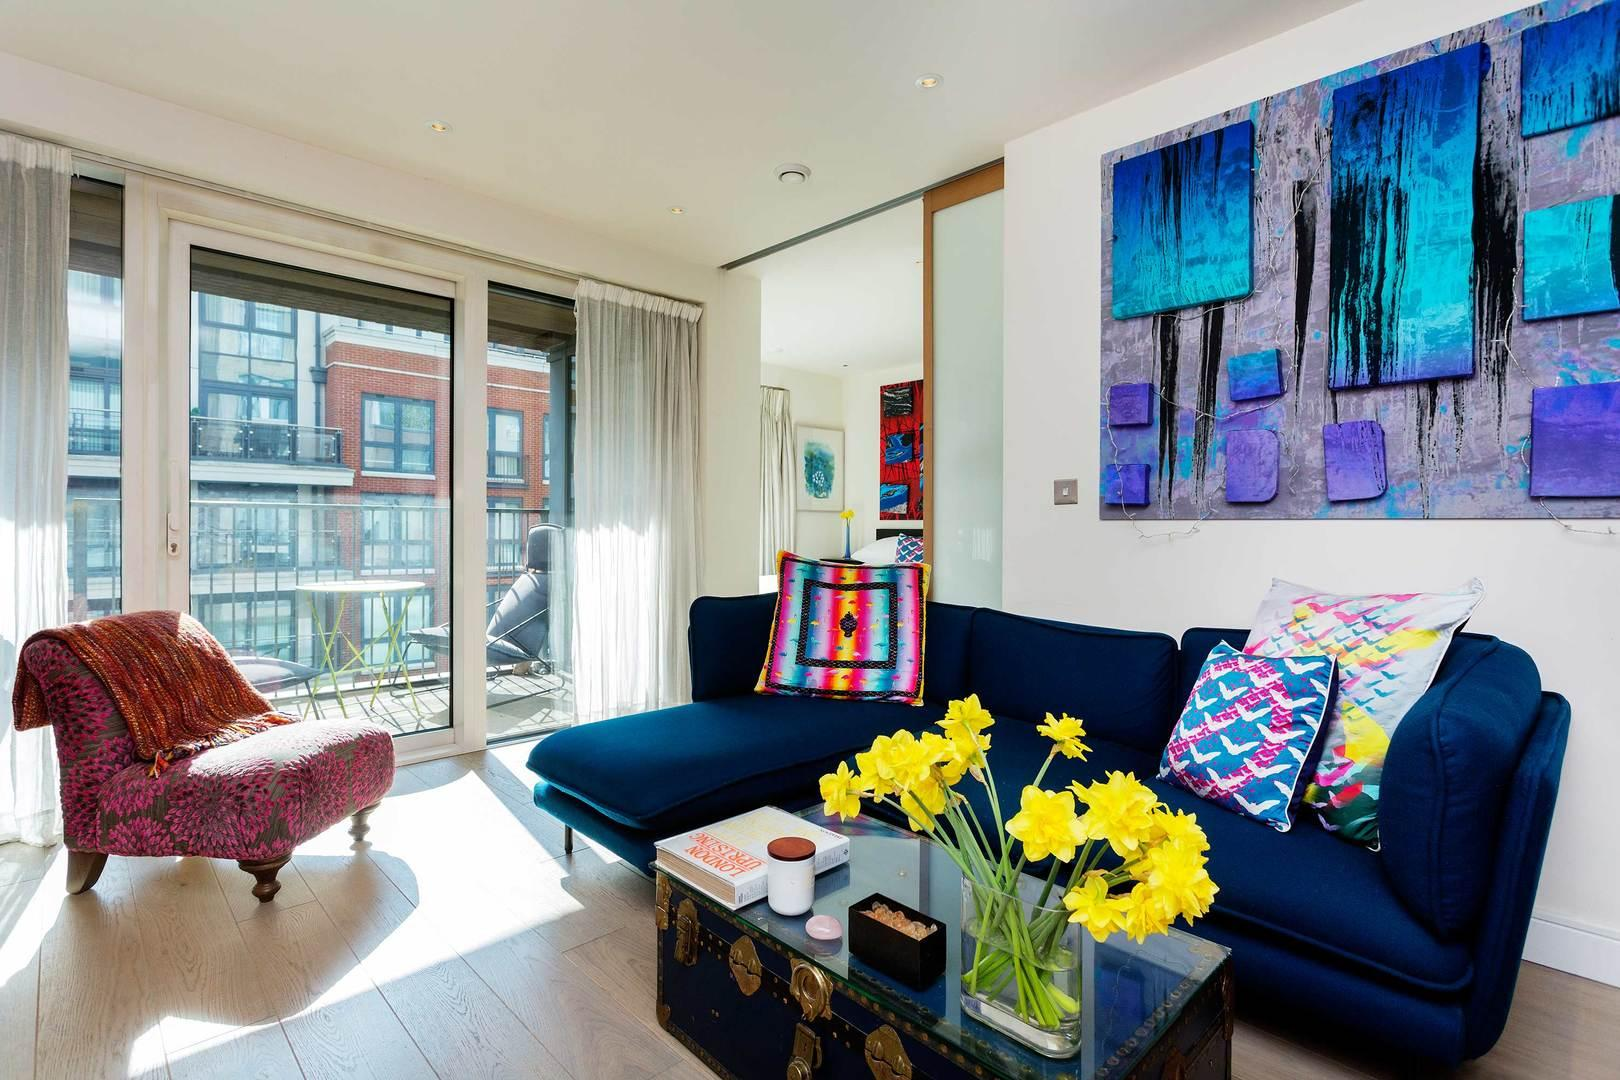 Property Image 1 - Upscale Chelsea Harbour Apartment with Balcony